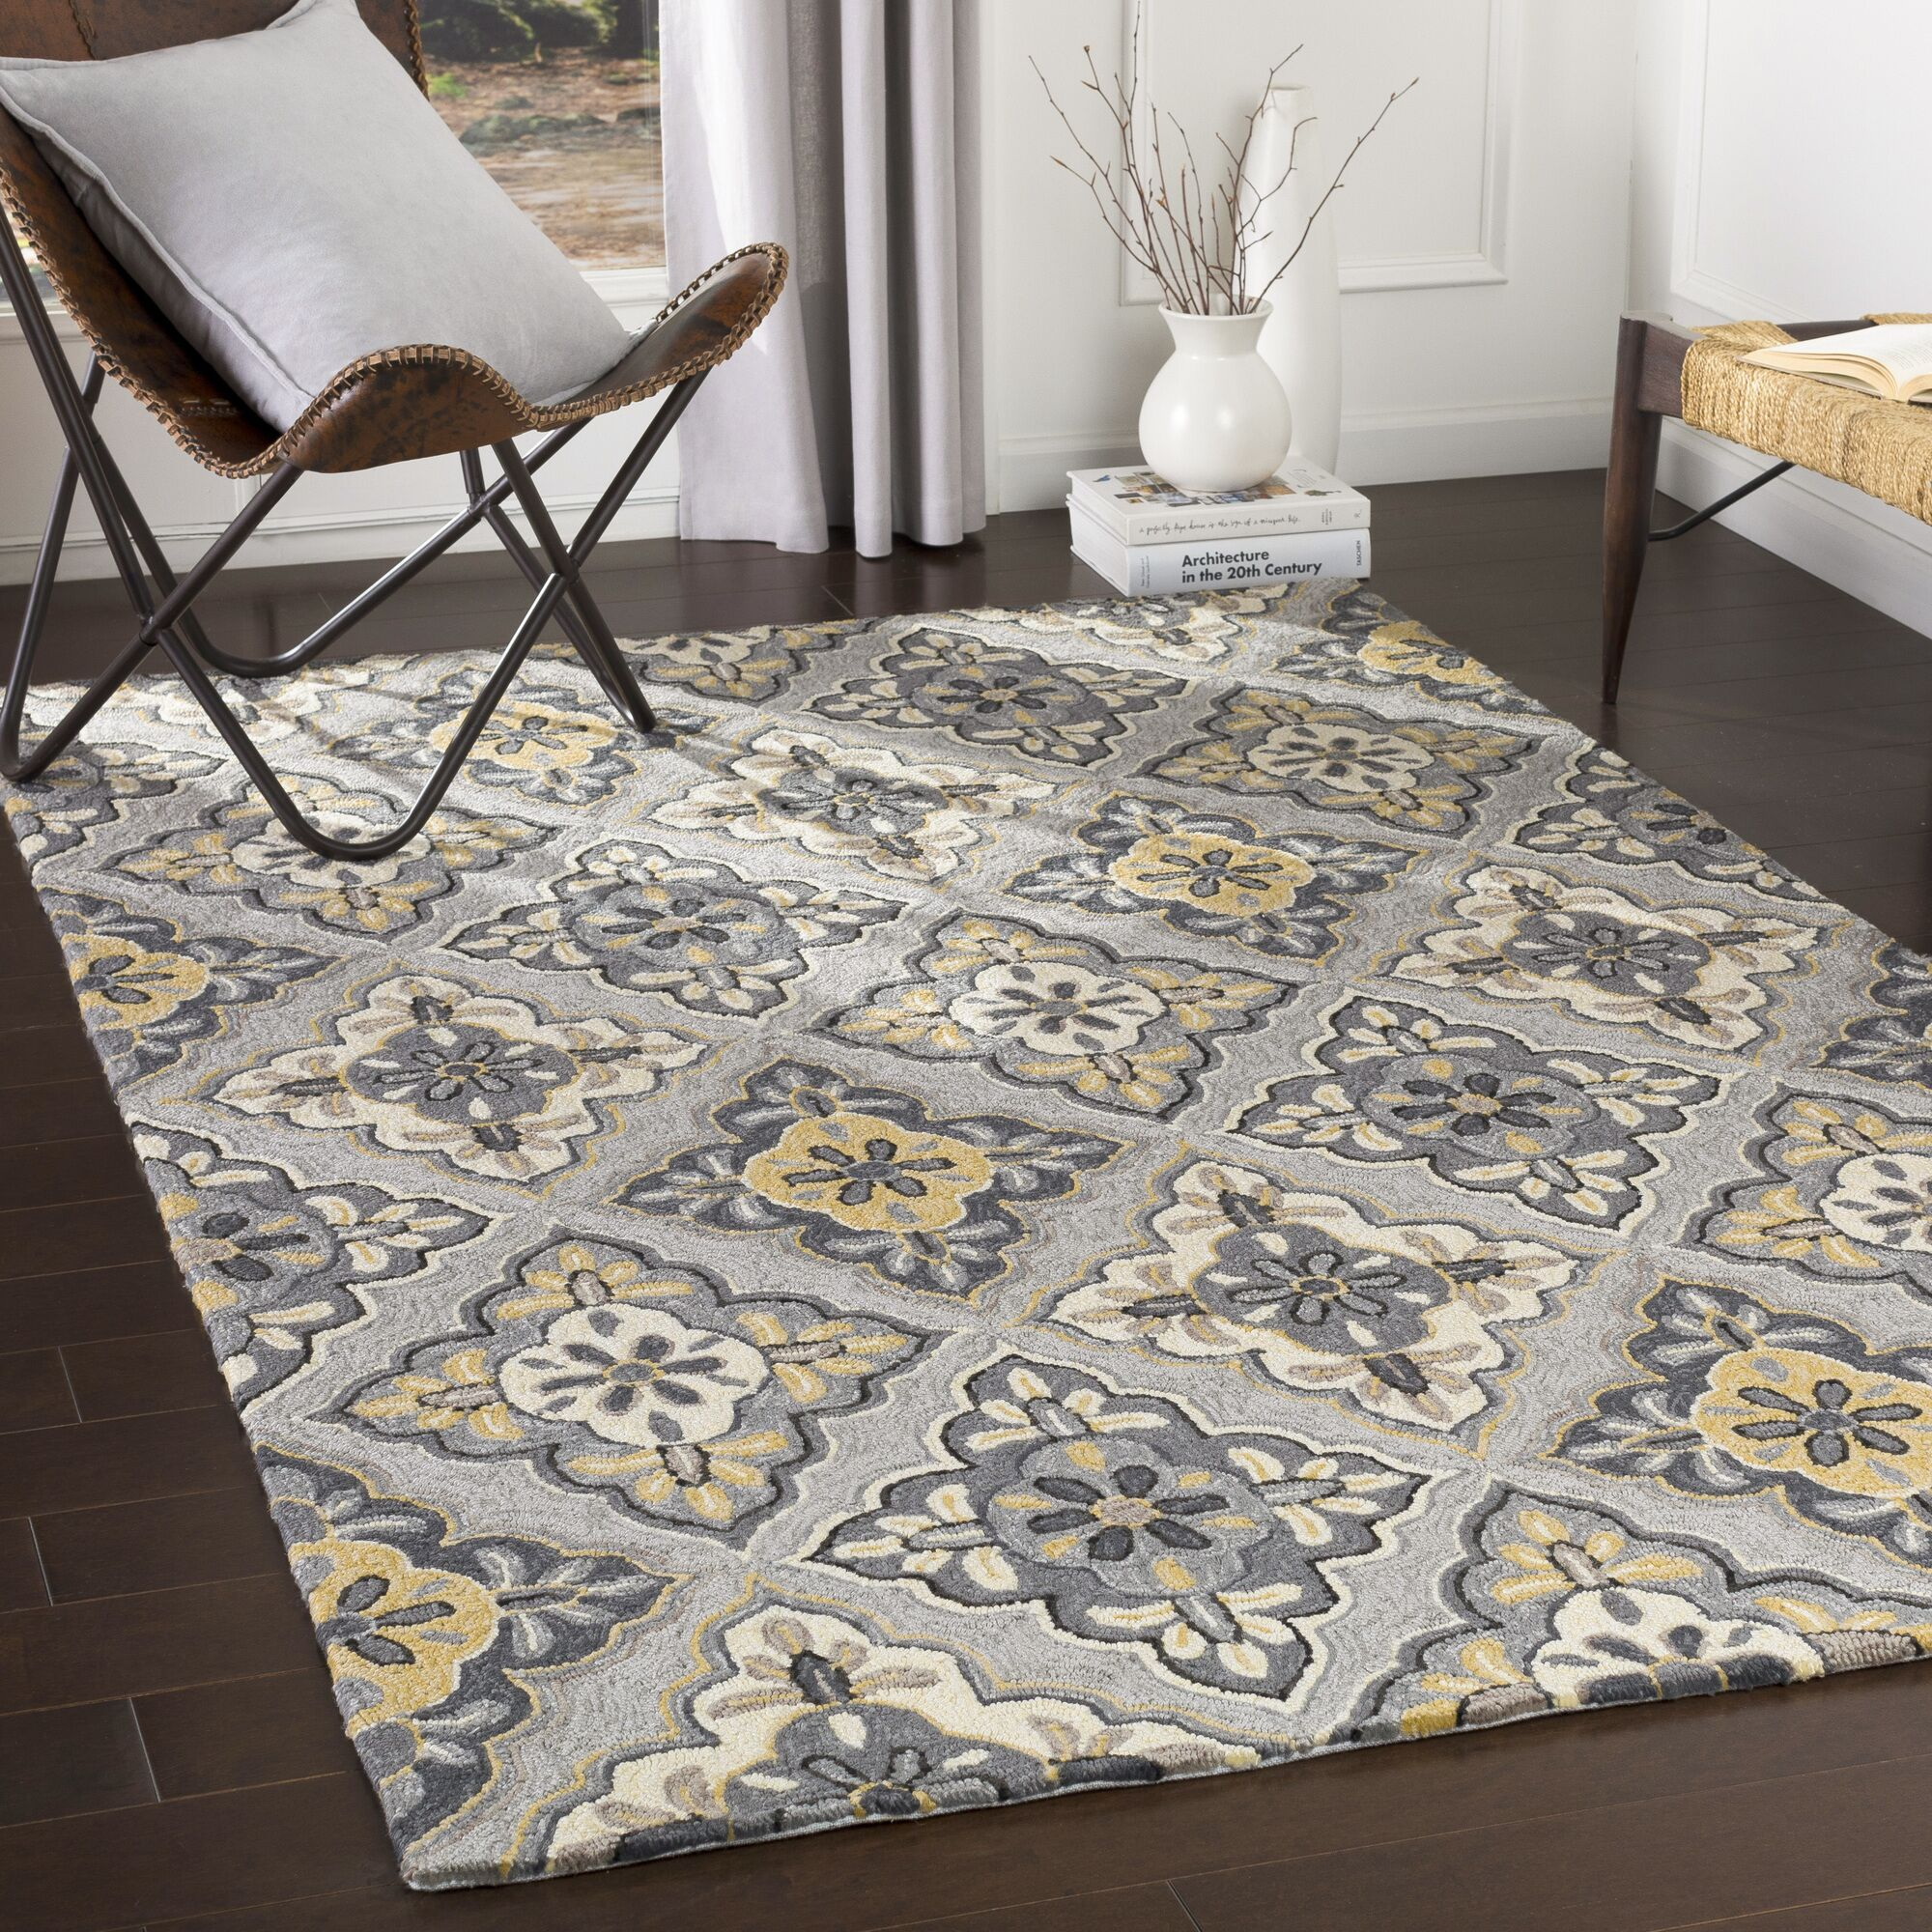 Cynthia Medallion Hand-Looped Black/Charcoal Indoor / Outdoor Area Rug Rug Size: Rectangle 9' x 12'